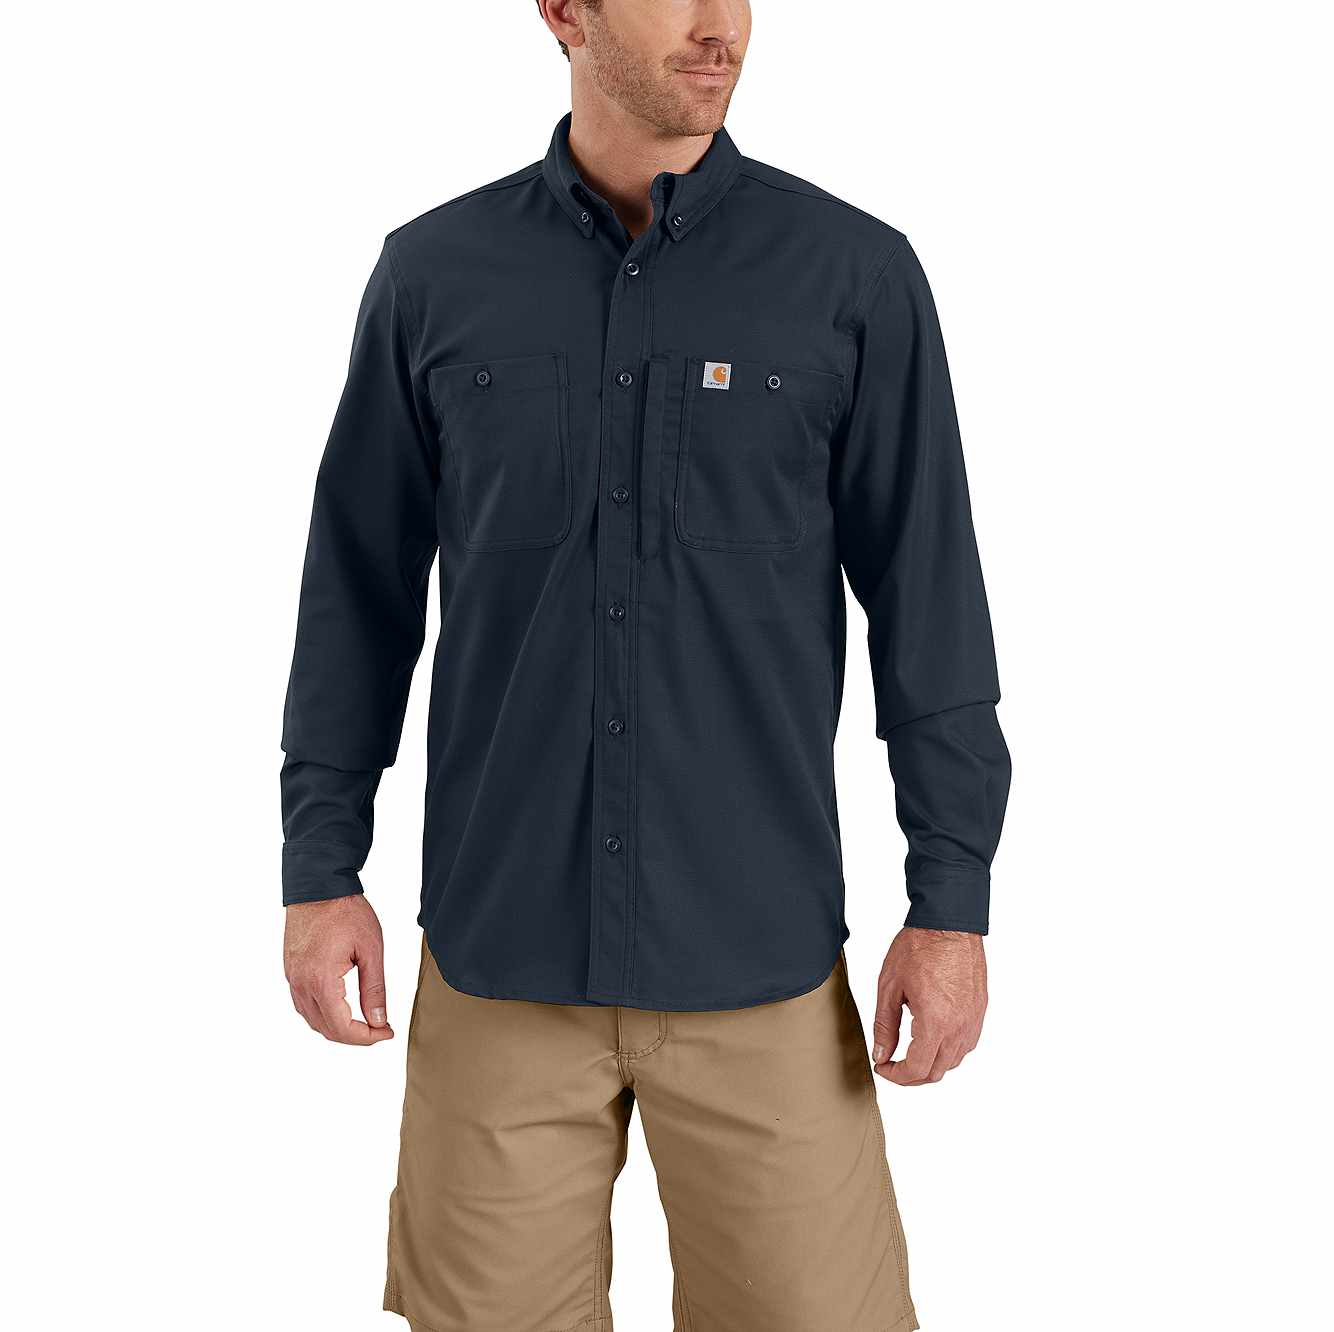 Picture of Rugged Professional™ Series Men's Long-Sleeve Shirt in Navy